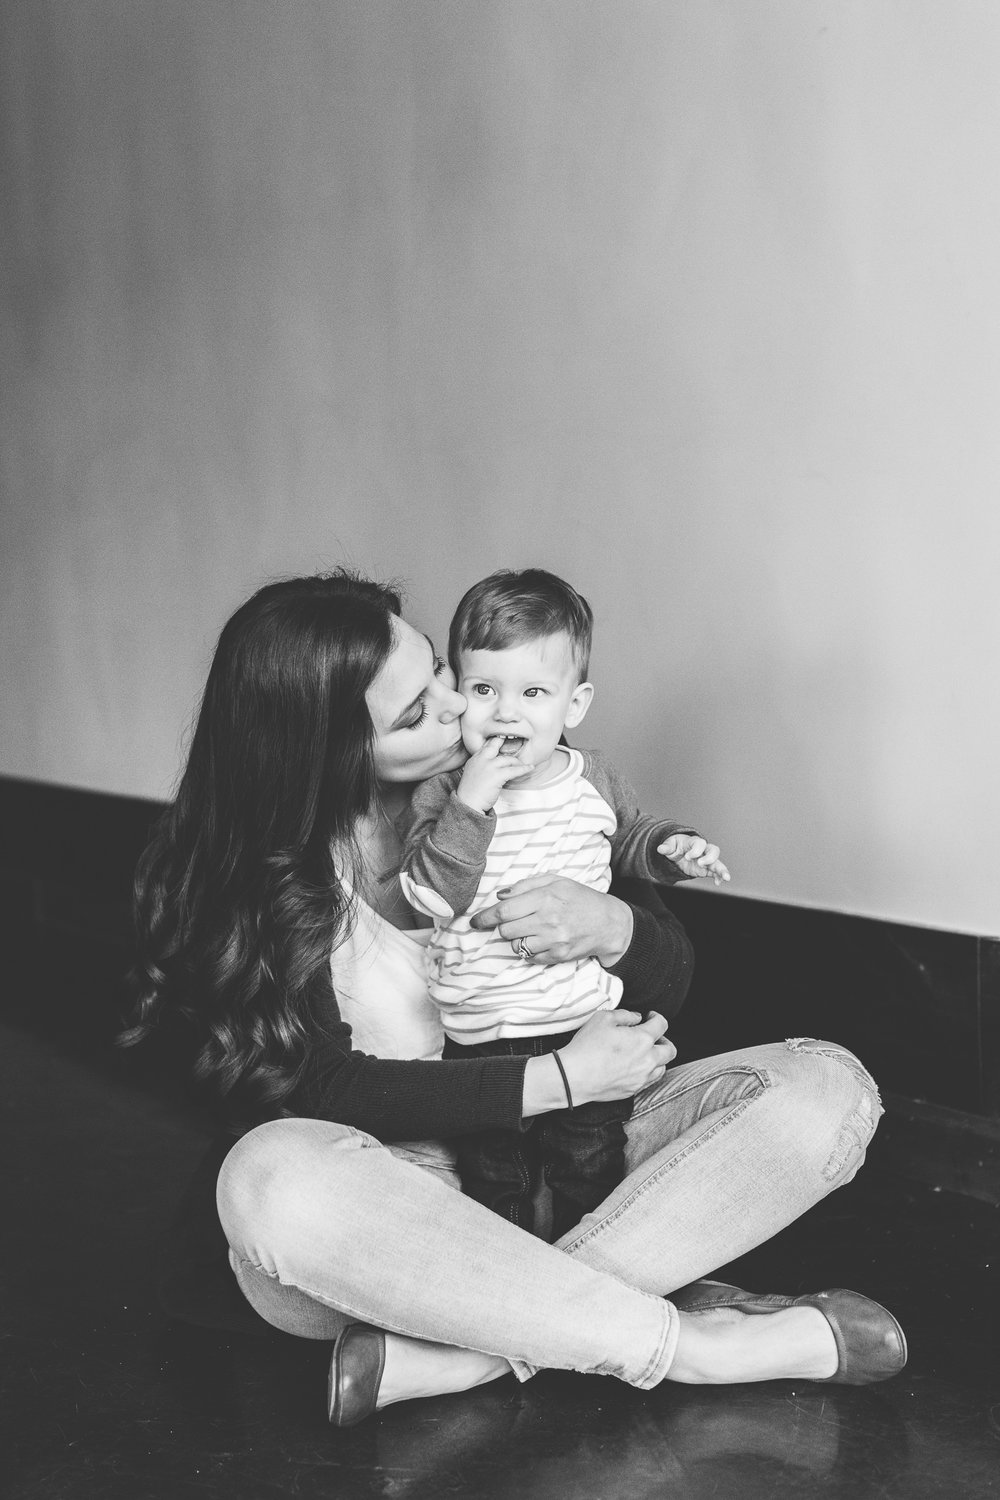 Knoxville Minimal Family Portrait Photography // First Birthday Smash Cake Photos // Suzy Collins Photography